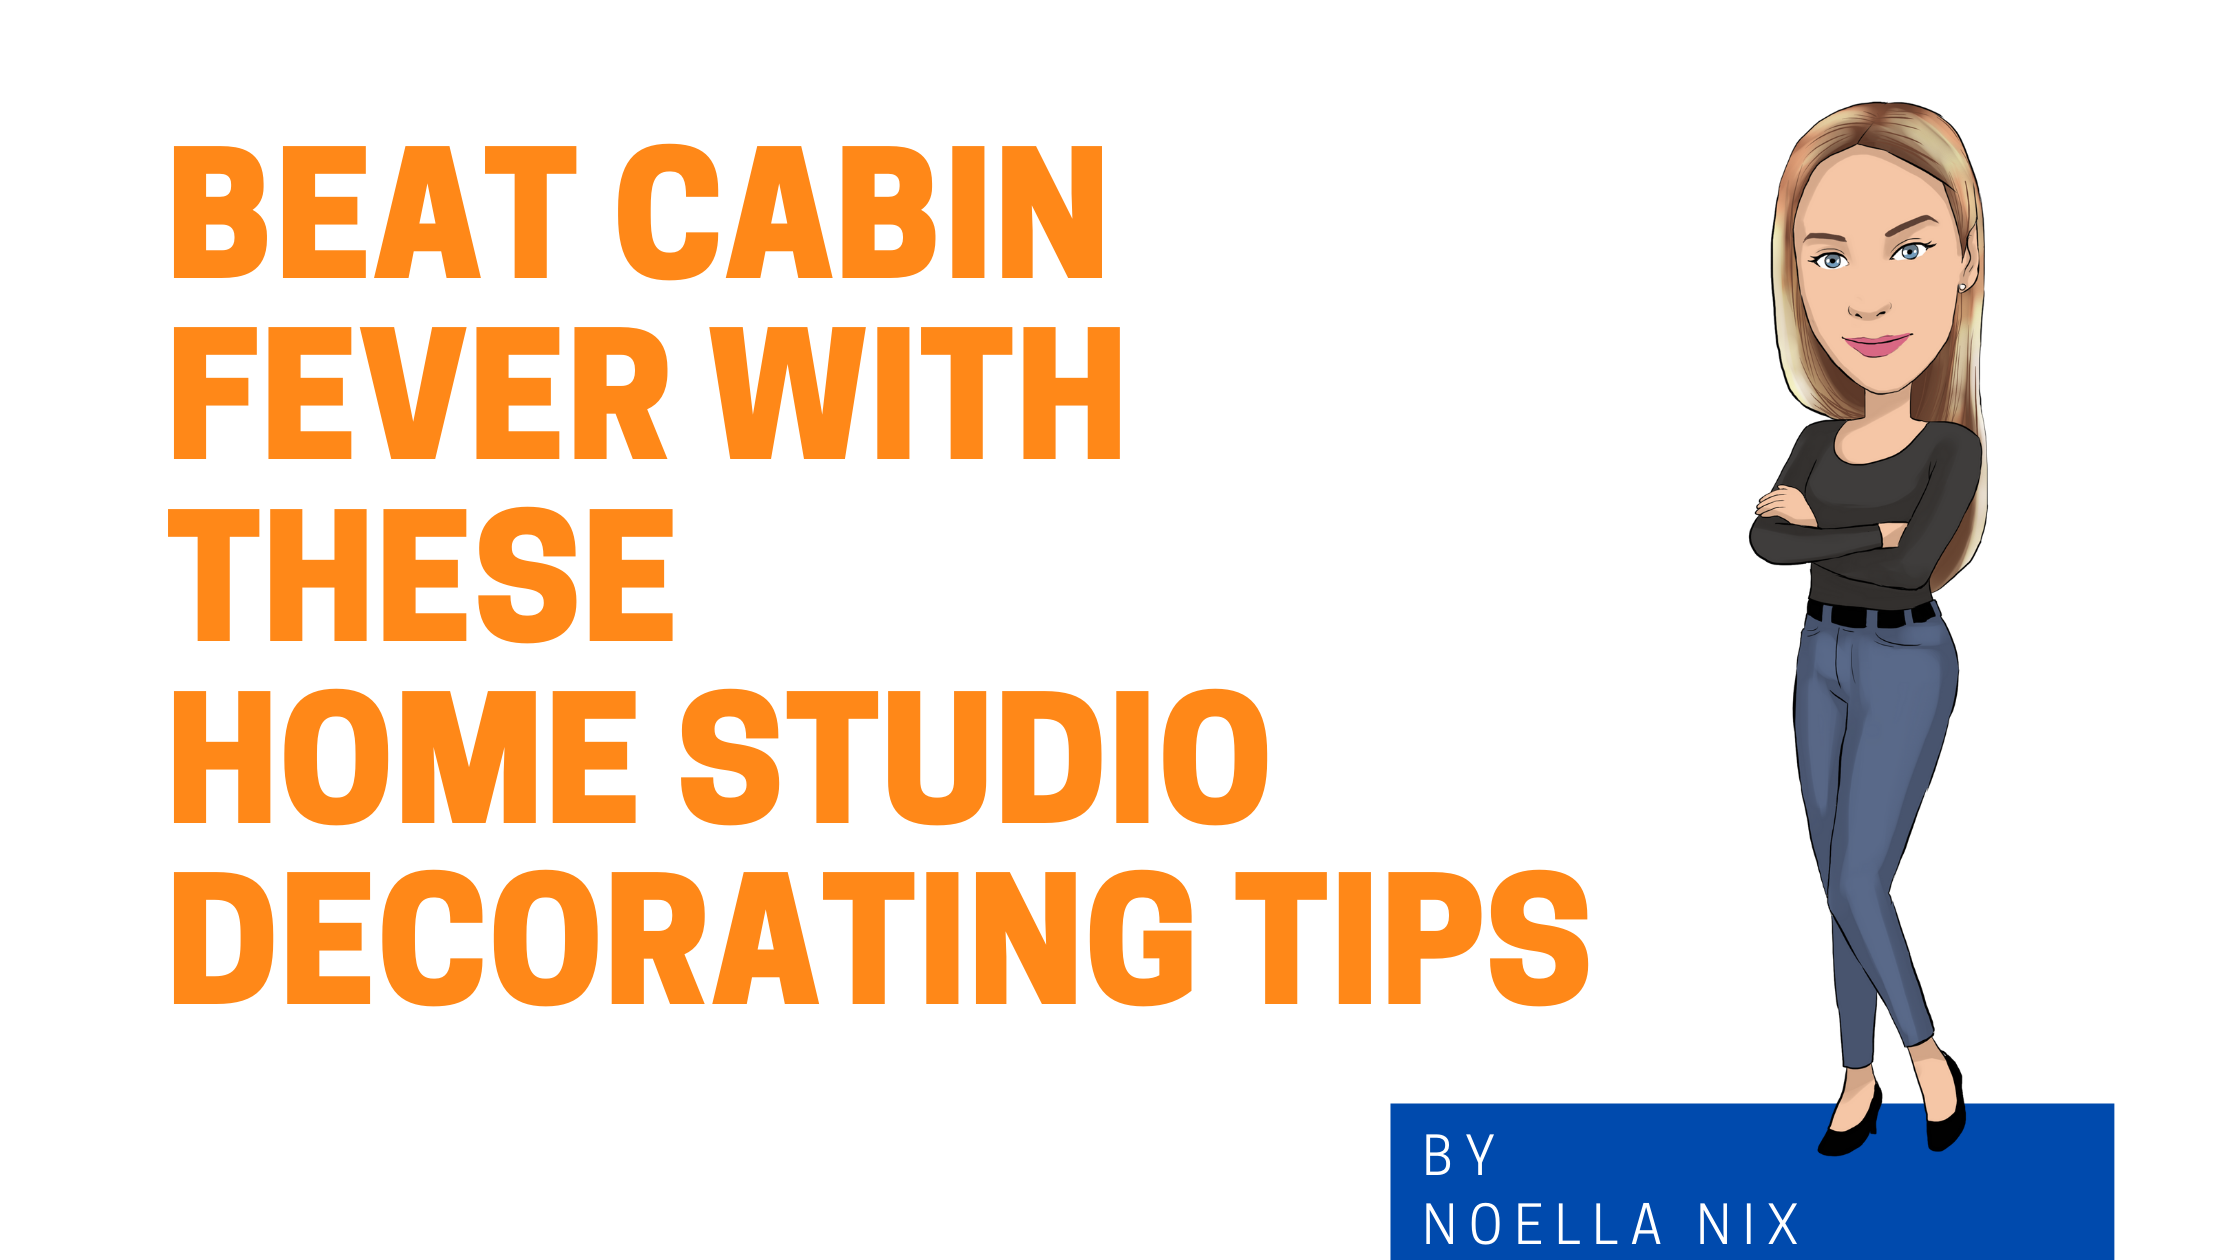 Beat Cabin Fever with These Home Studio Decorating Tips Image graphic